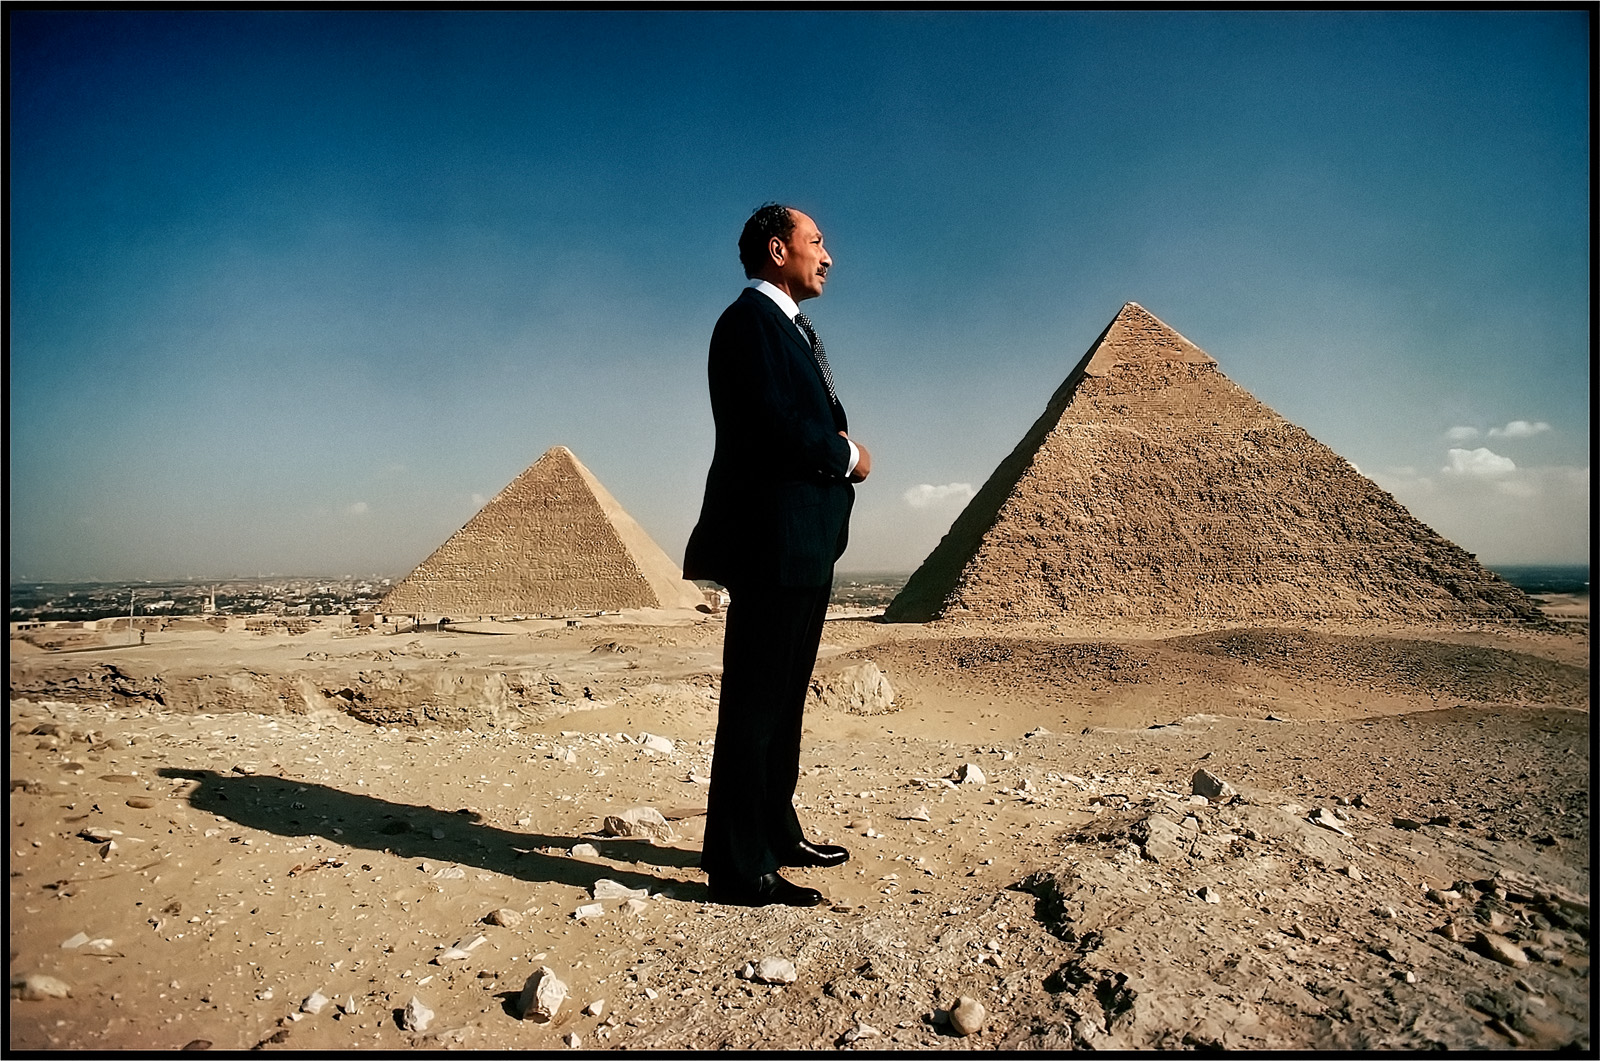 Egyptian President Anwar Sadat poses in front of the Pyramids of Giza in 1977 in Cairo for Time Magazine's Man of the Year issue. (Photo by David Hume Kennerly)